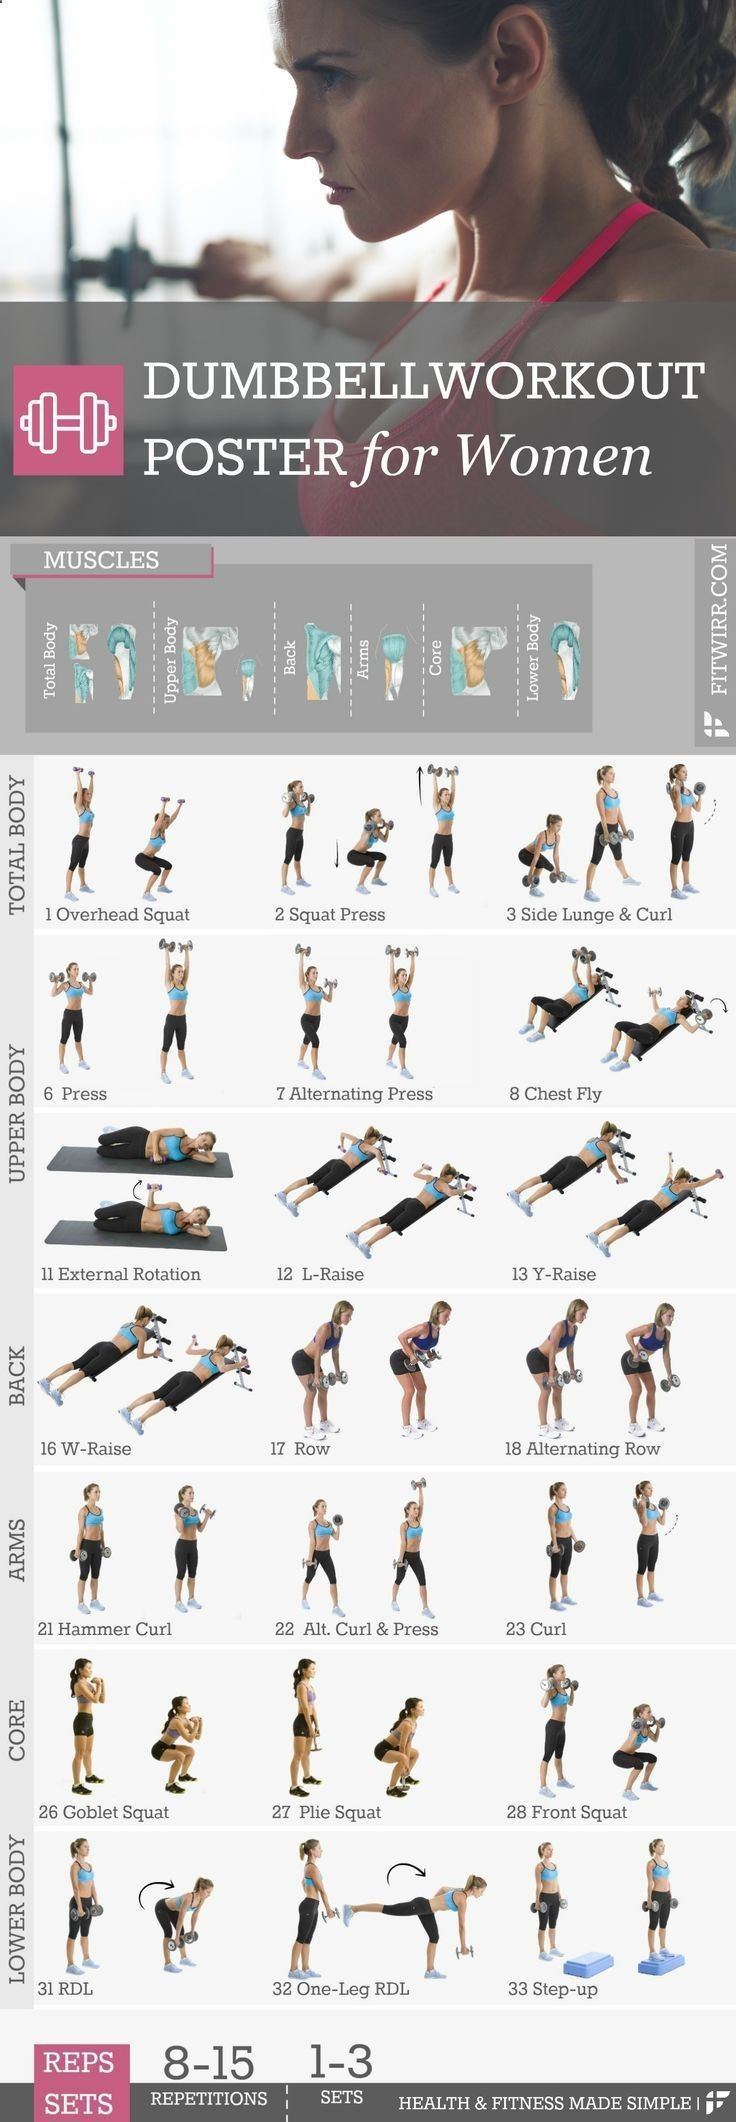 Fitwirr dumbbell workout poster for women 19 x 27 best